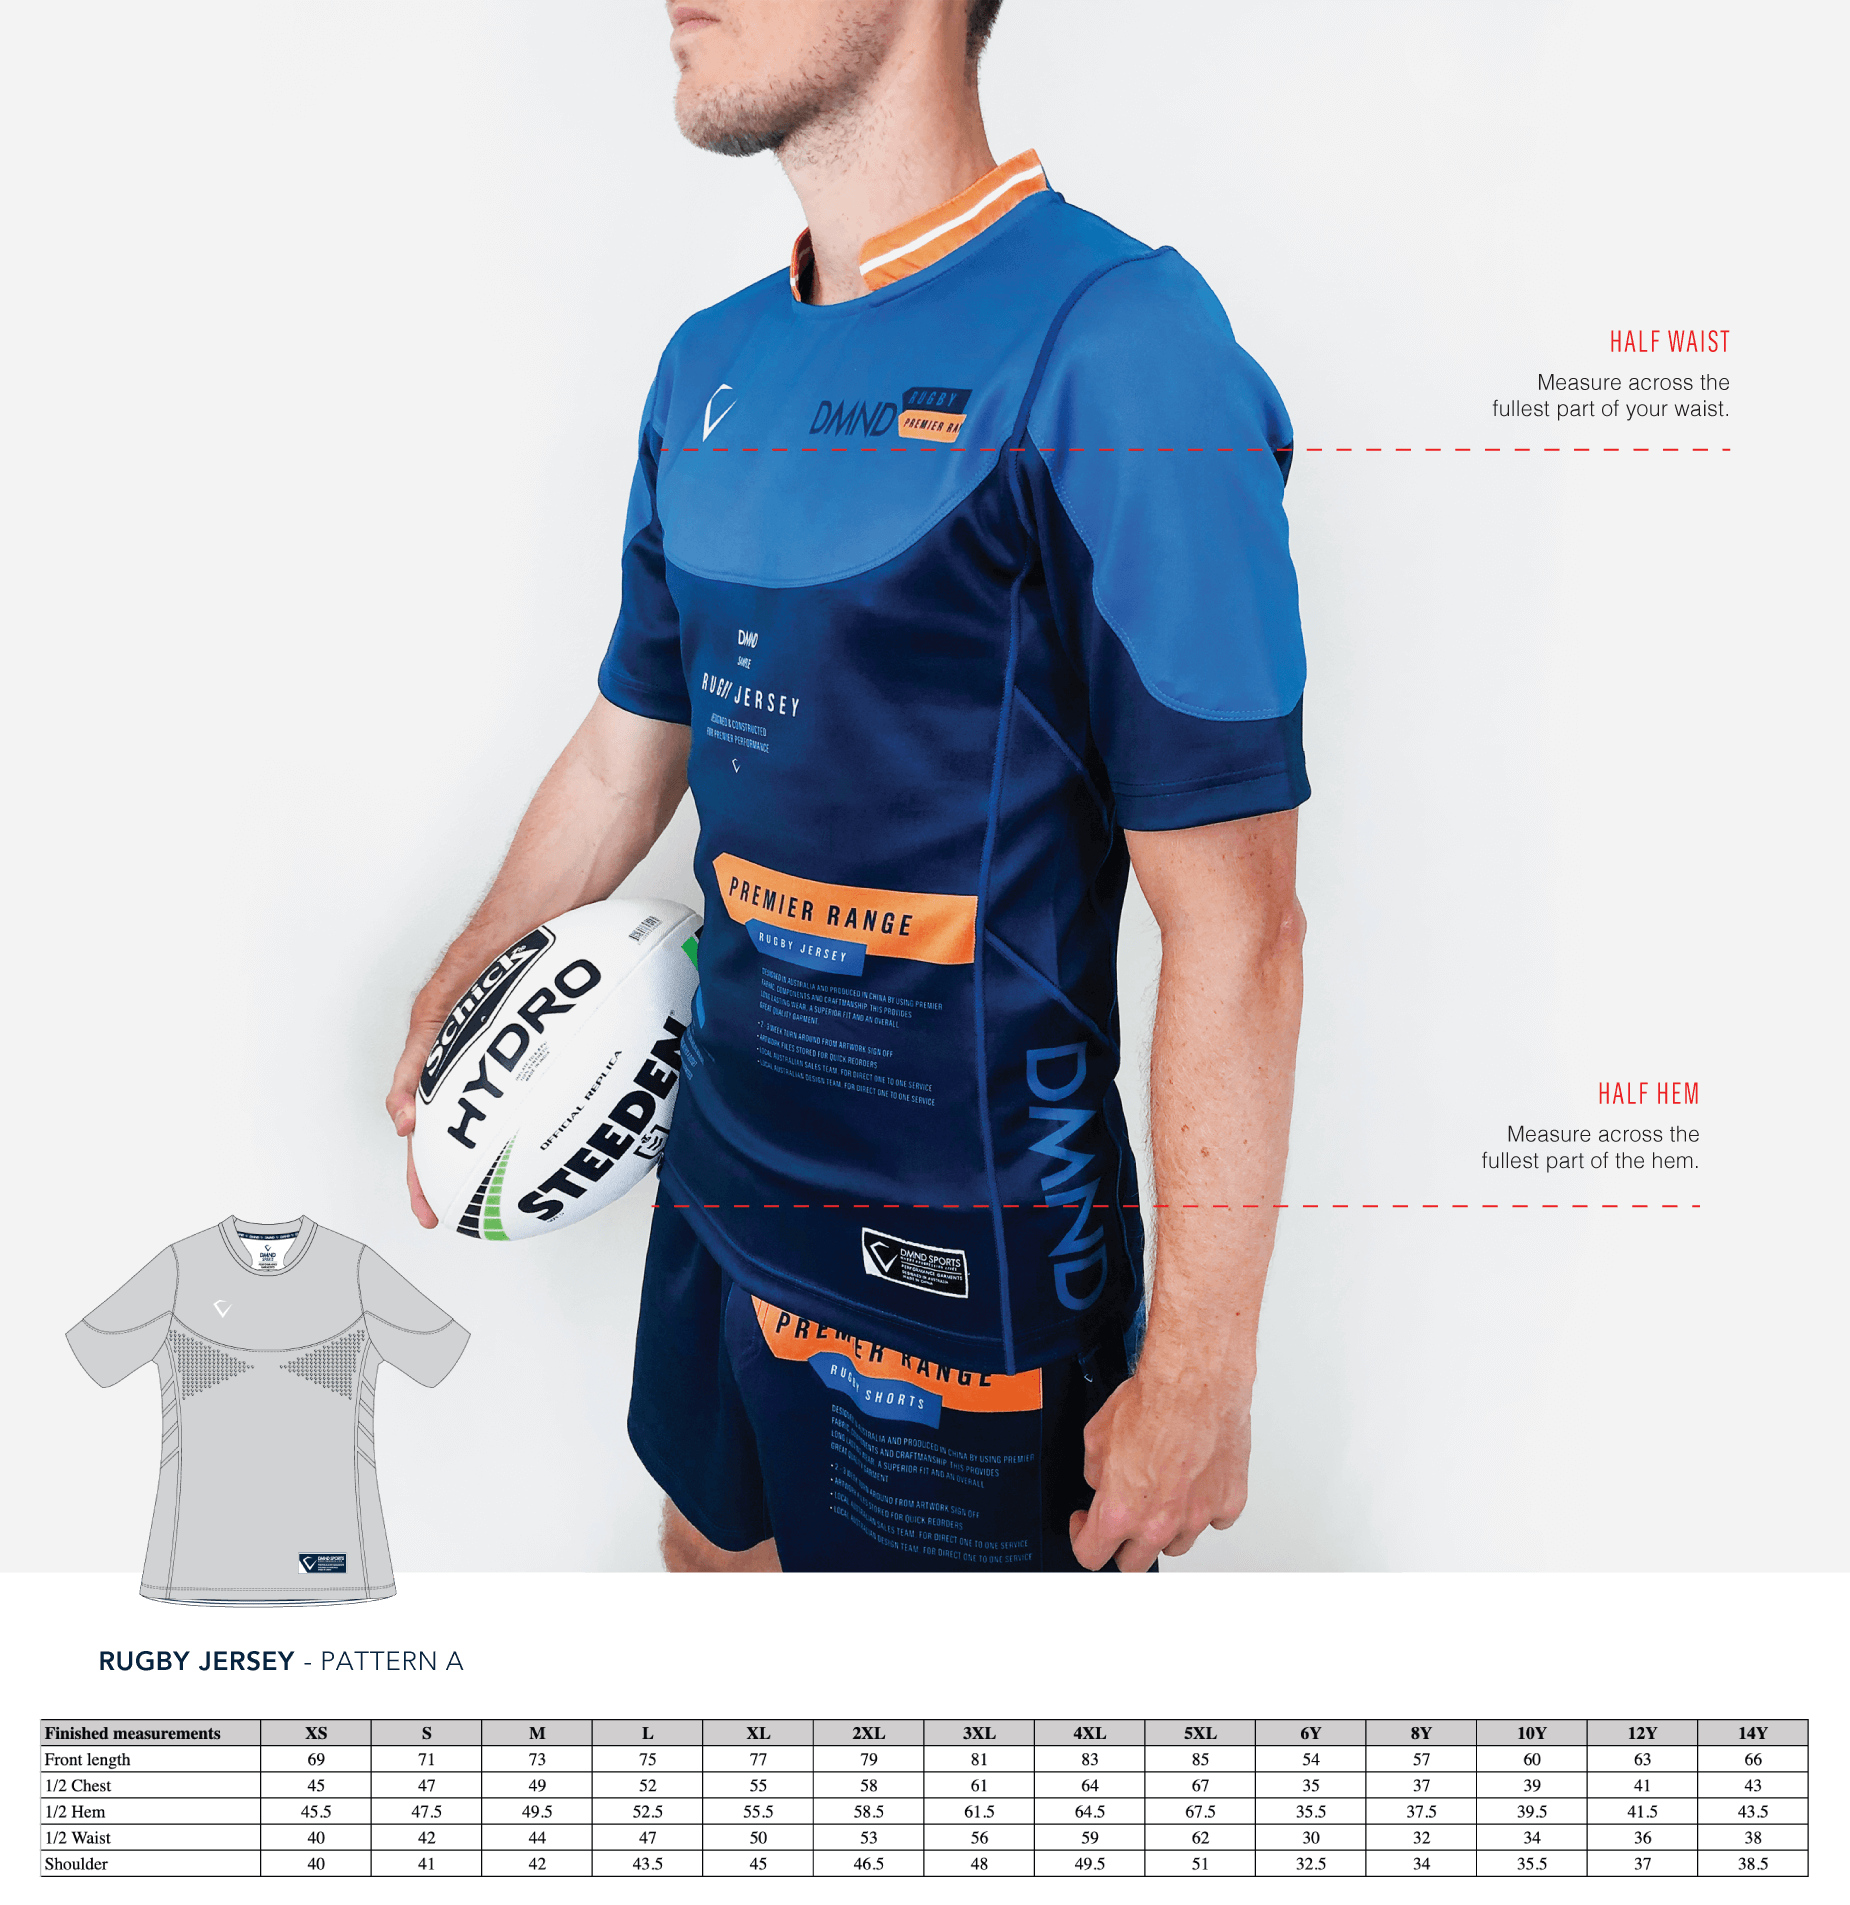 Rugby Jerseys Pattern A Size Guide